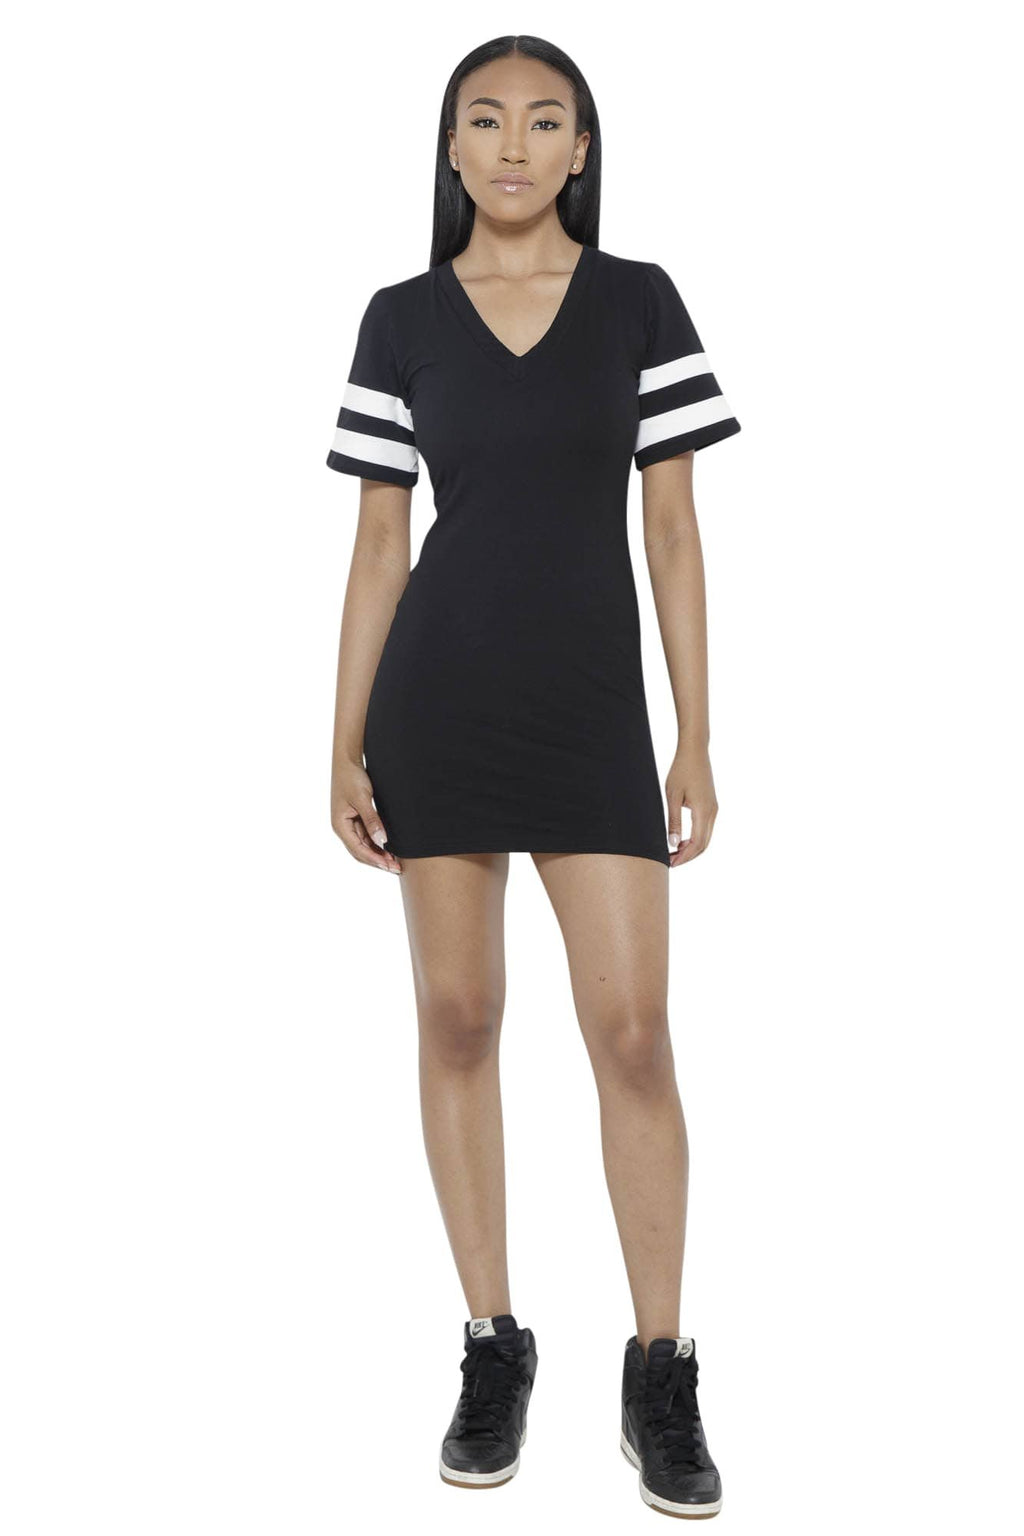 Instant Replay Dress-Black Clothing Fair Shade S 94% cotton 6% spandex Black